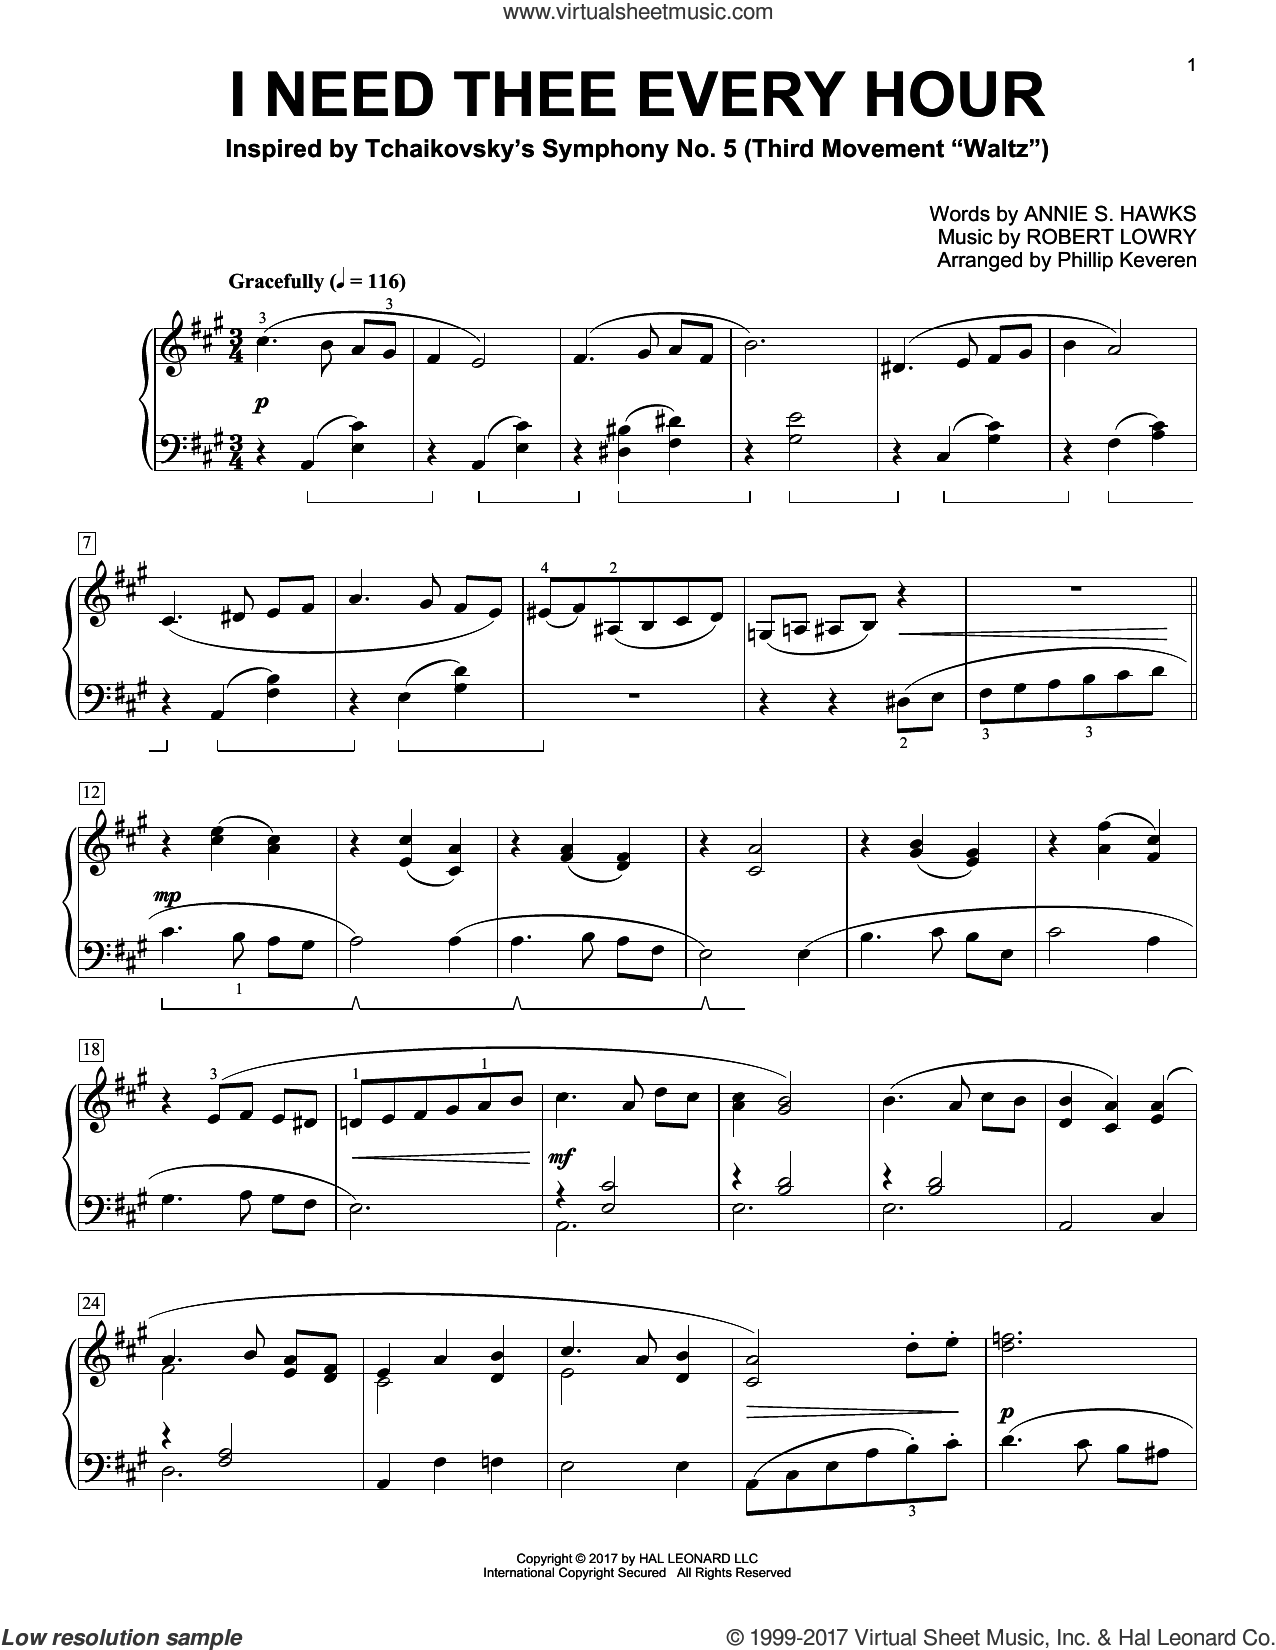 I Need Thee Every Hour sheet music for piano solo by Robert Lowry, Phillip Keveren and Annie S. Hawks, intermediate skill level